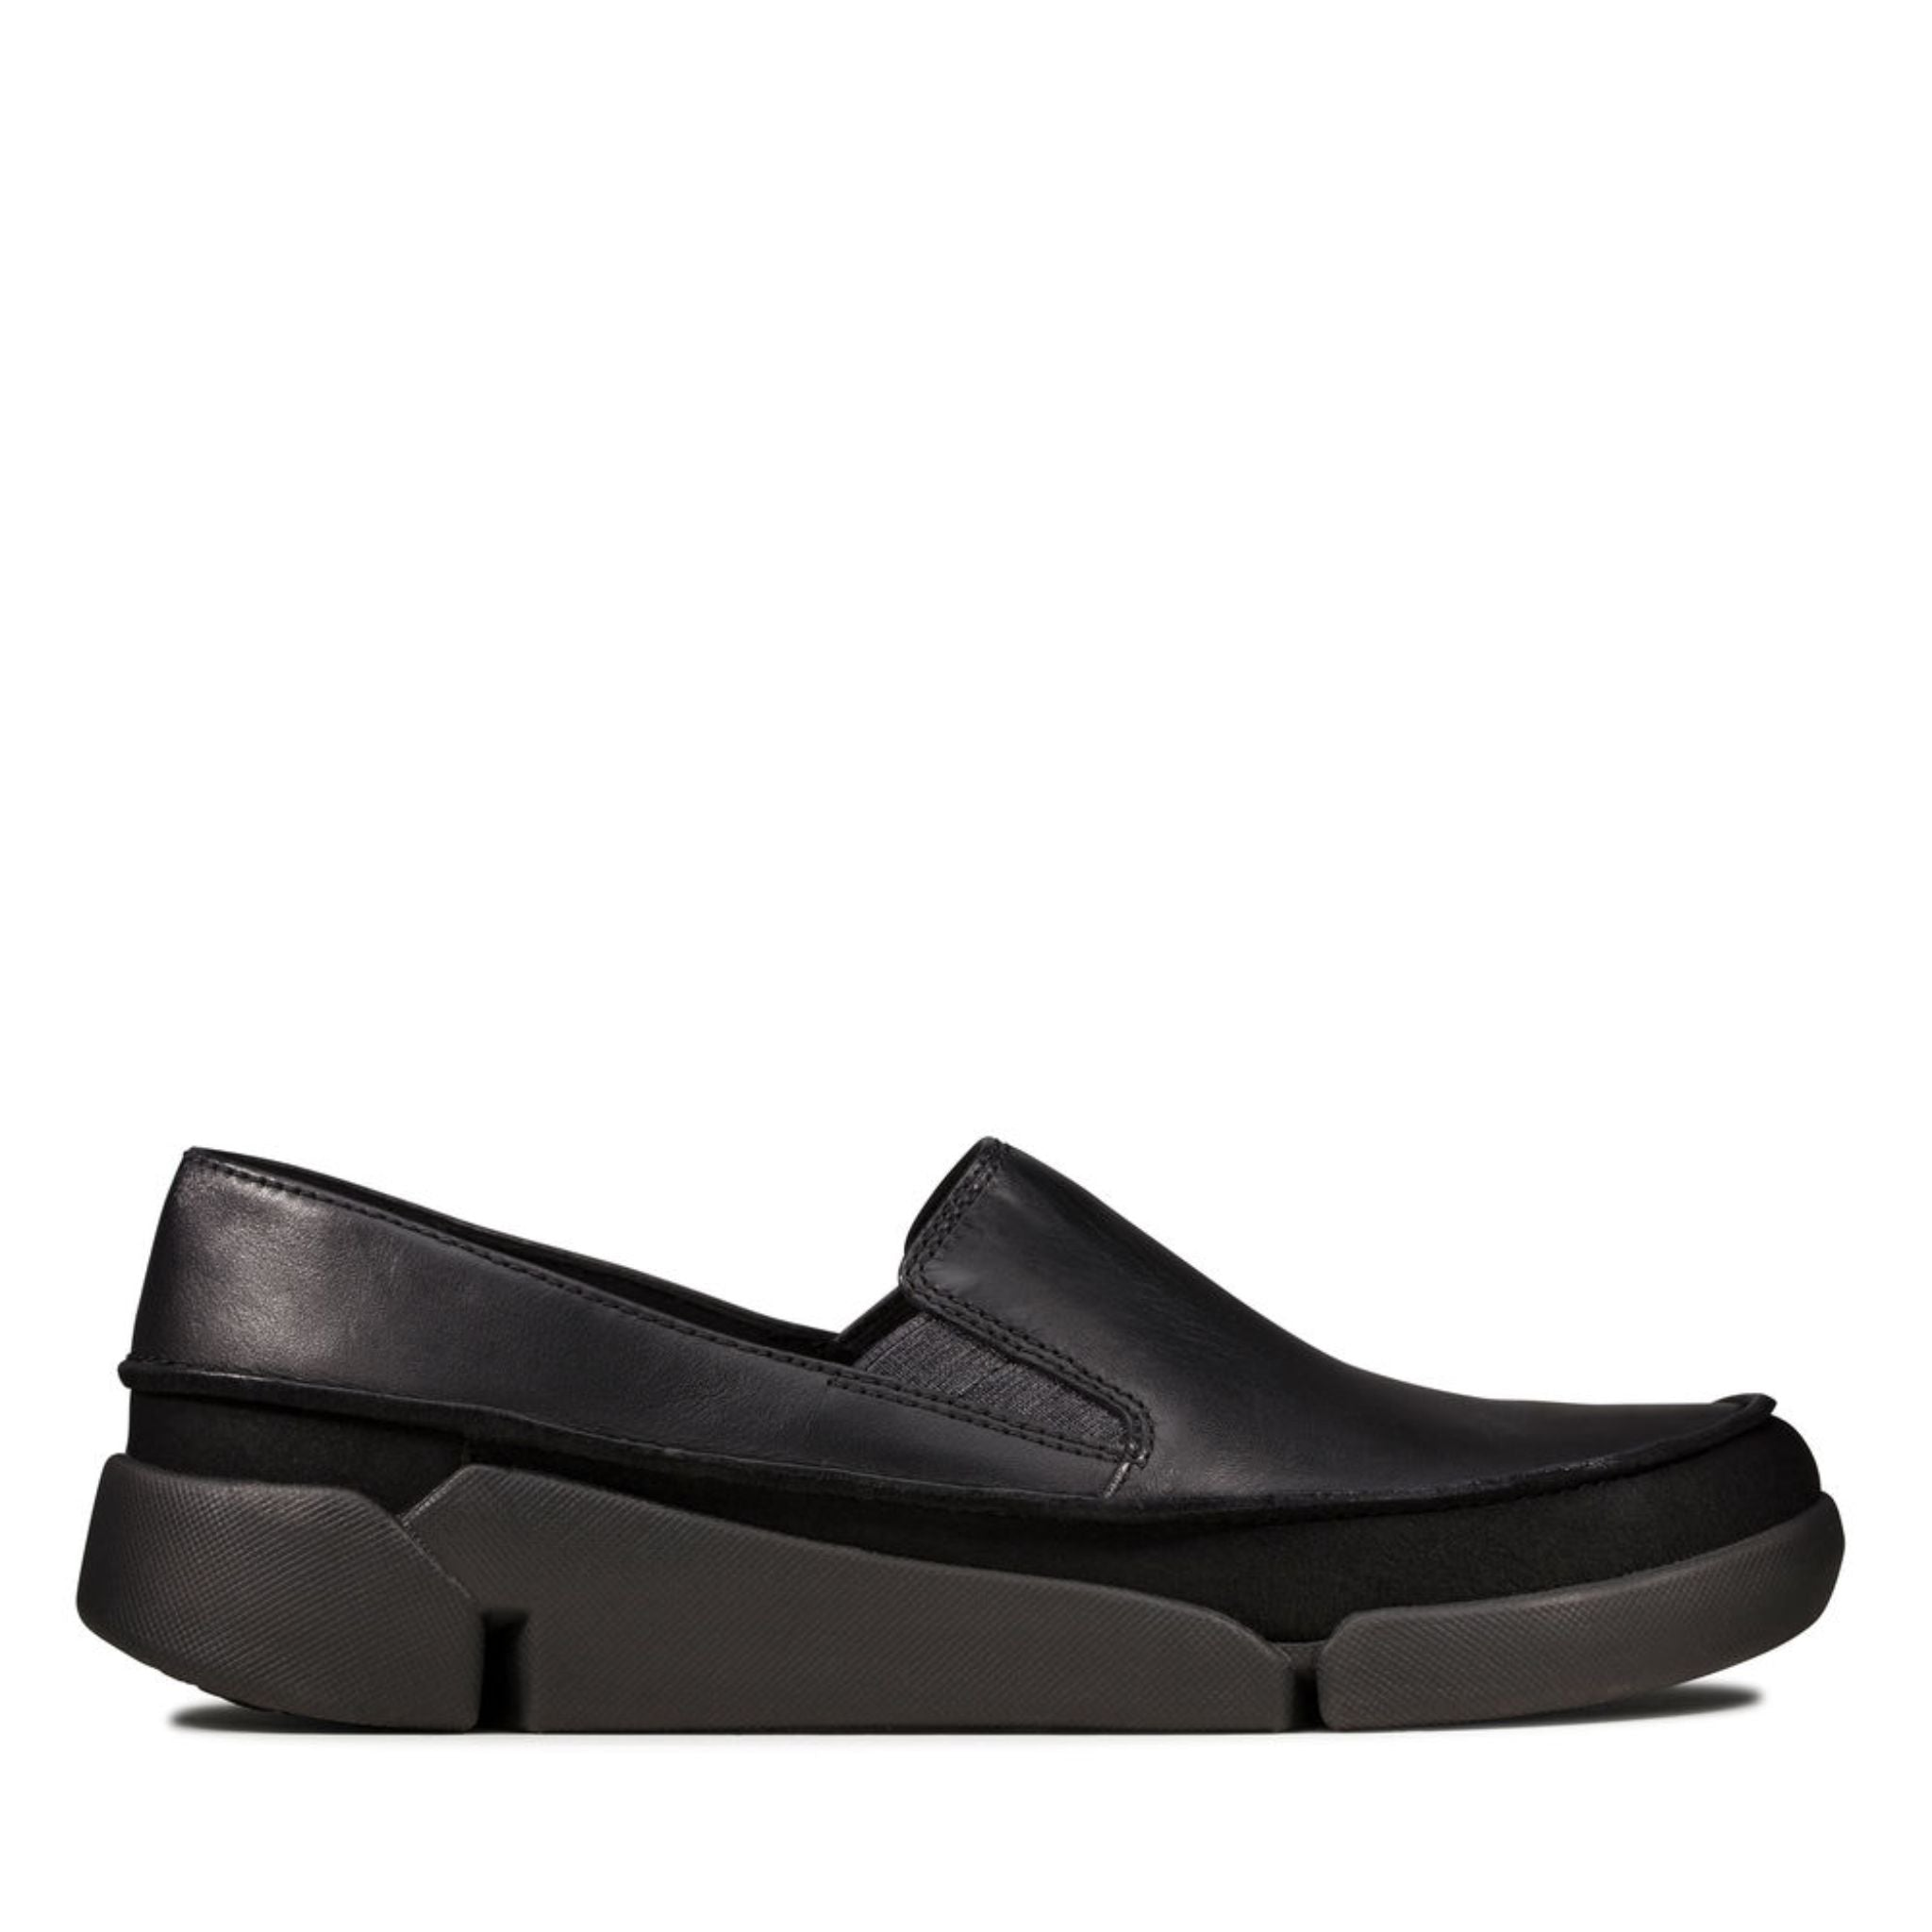 Clarks Tri Step Black Leather